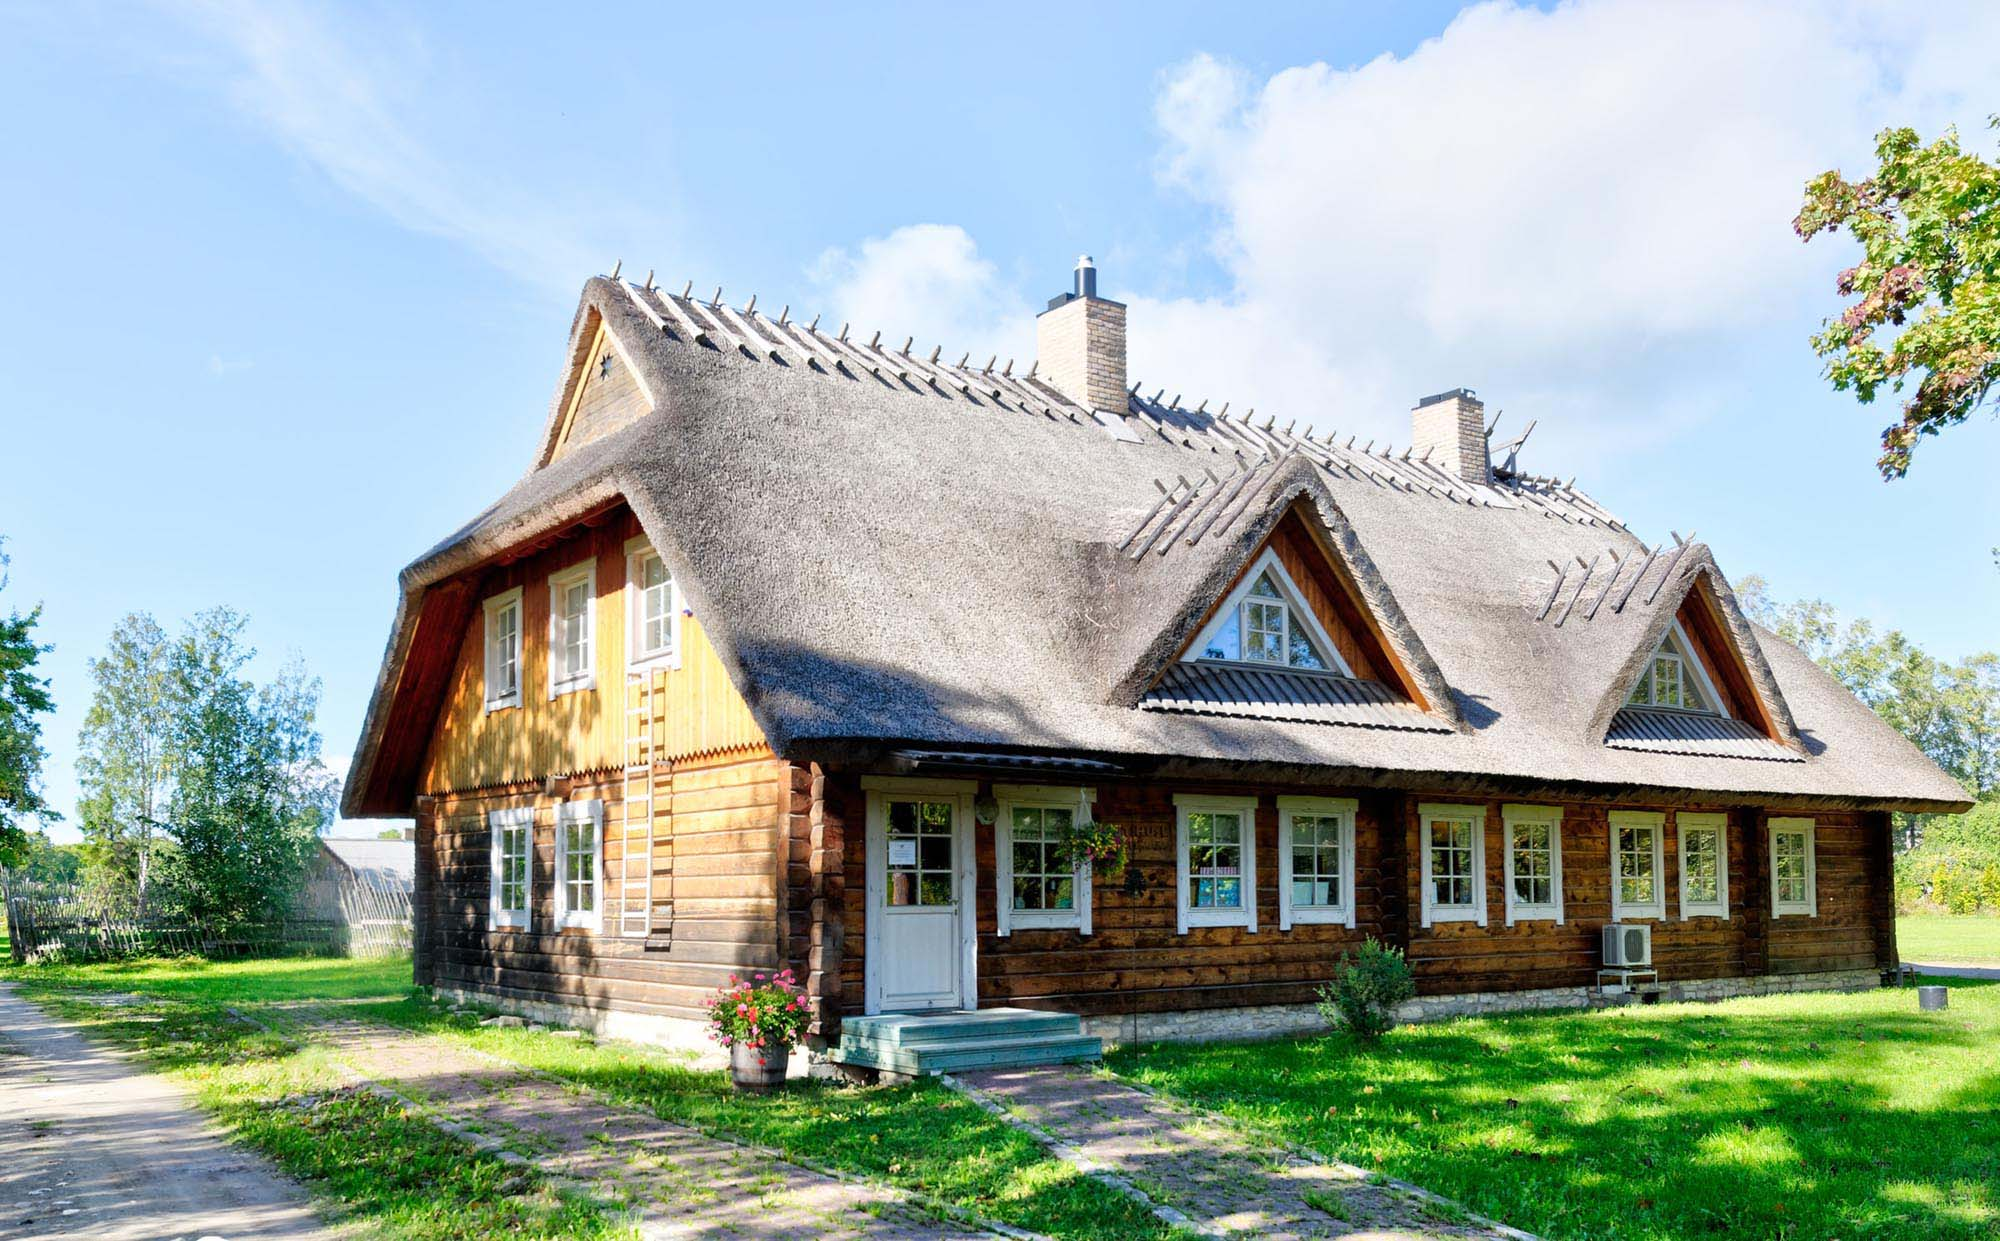 Home Buying Tips During a Seller's Market